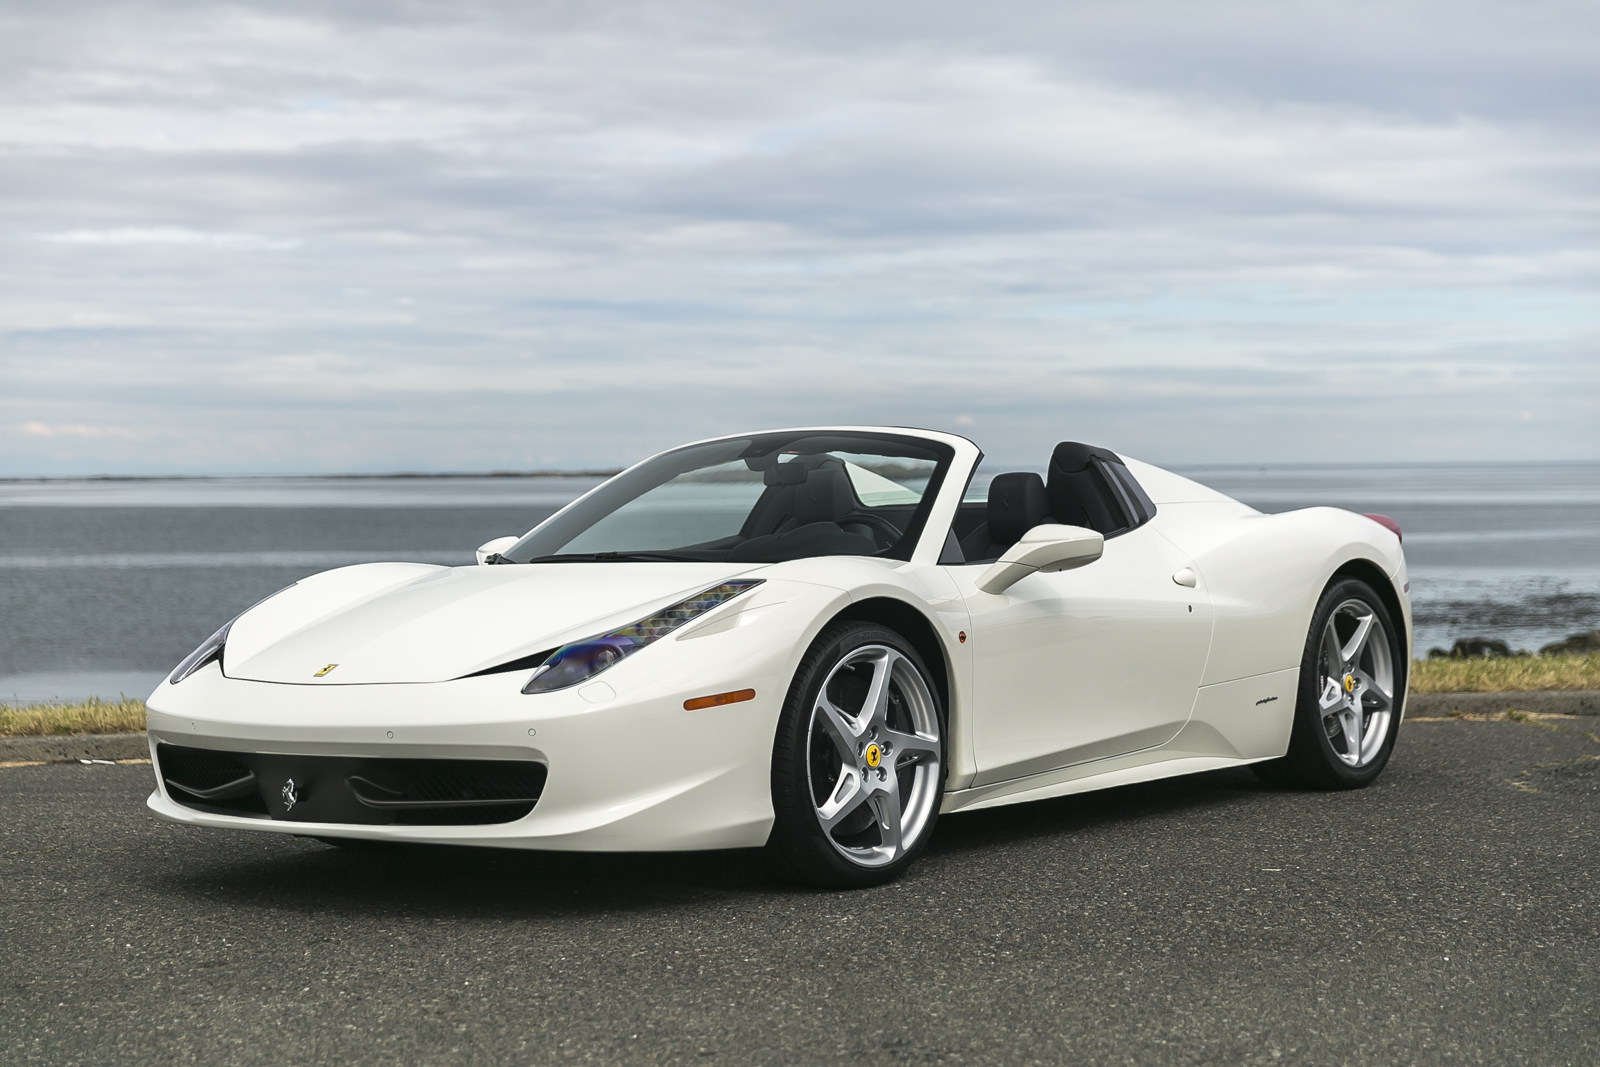 2012 ferrari 458 spider silver arrow cars ltd. Black Bedroom Furniture Sets. Home Design Ideas